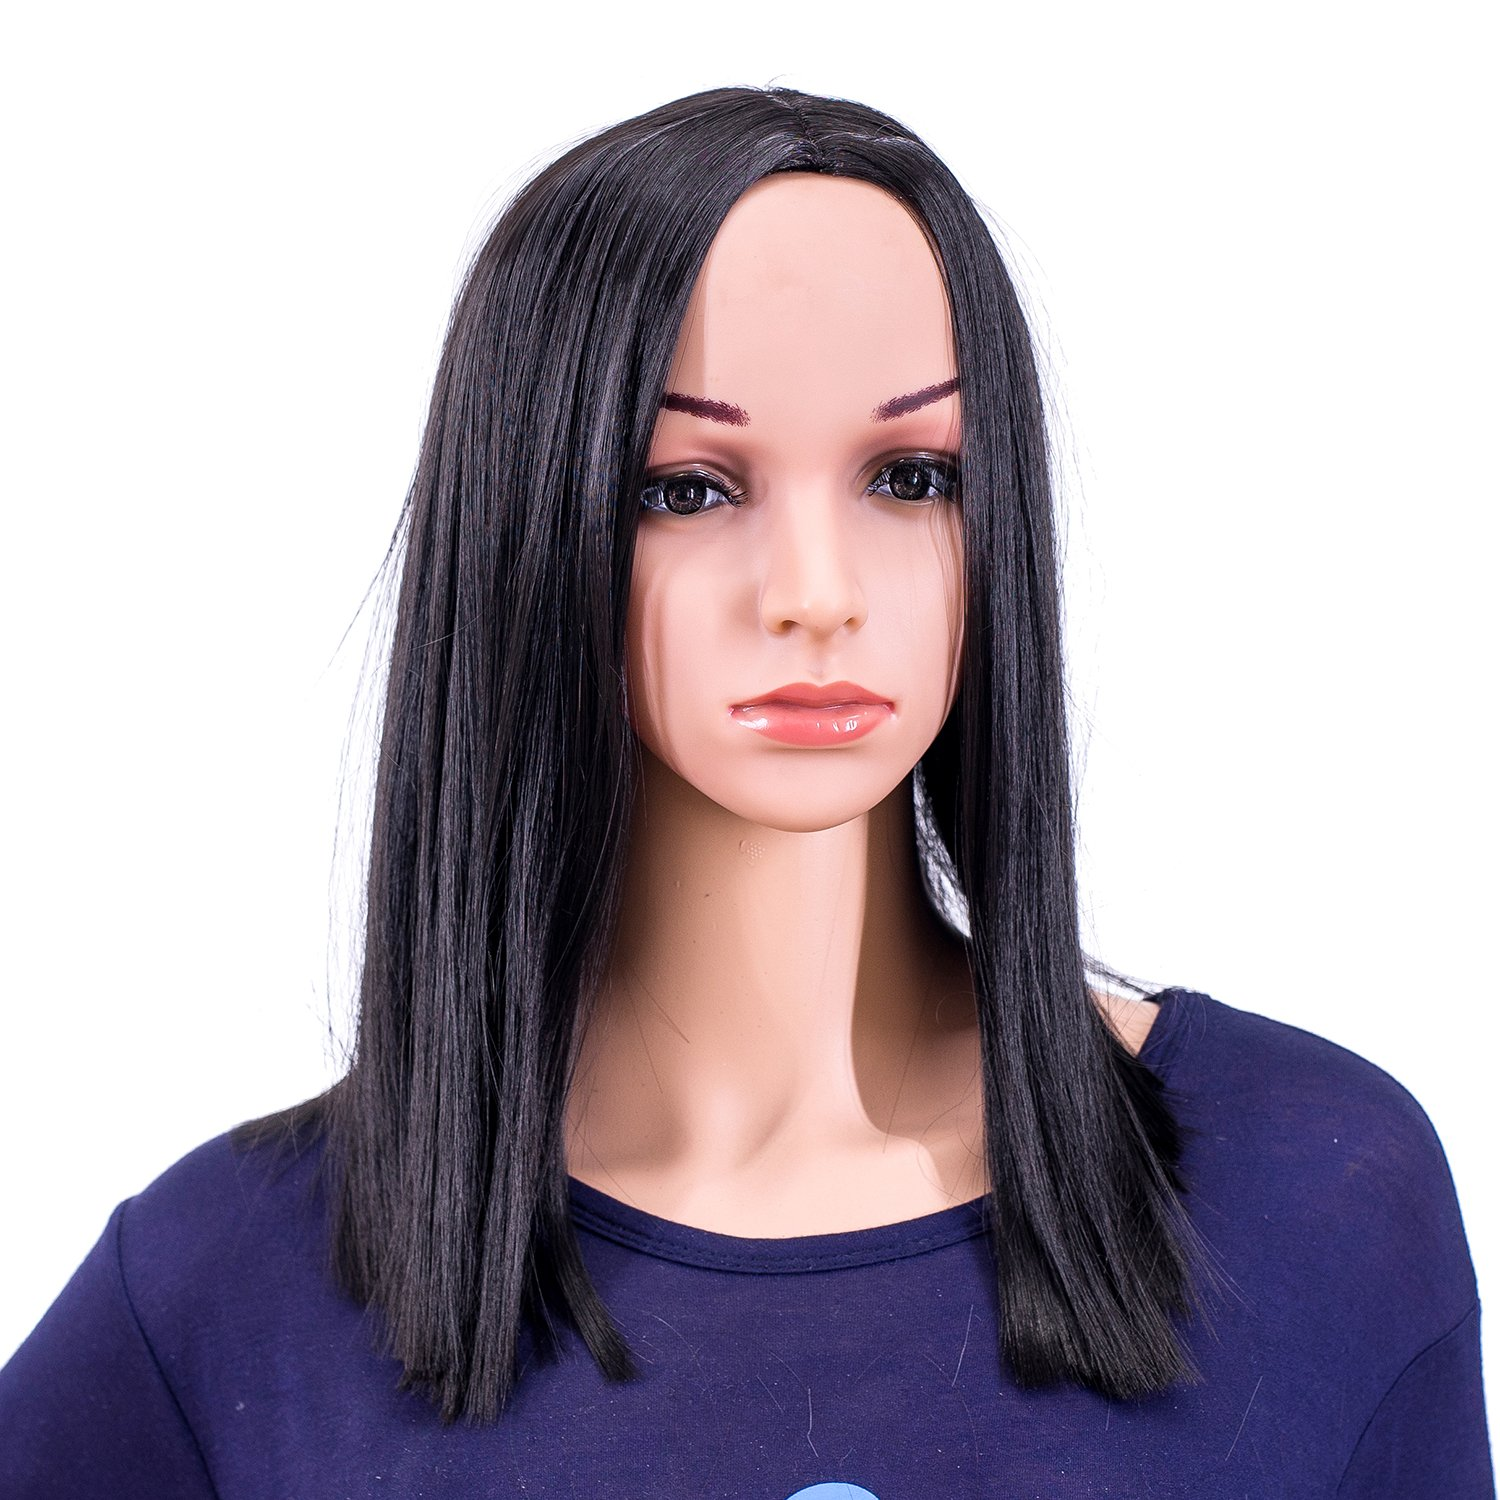 SWACC 14-Inch Short Straight Middle Part Hair Wig Medium Length Synthetic Heat Resistant Wigs for Women with Wig Cap (Black-1B)